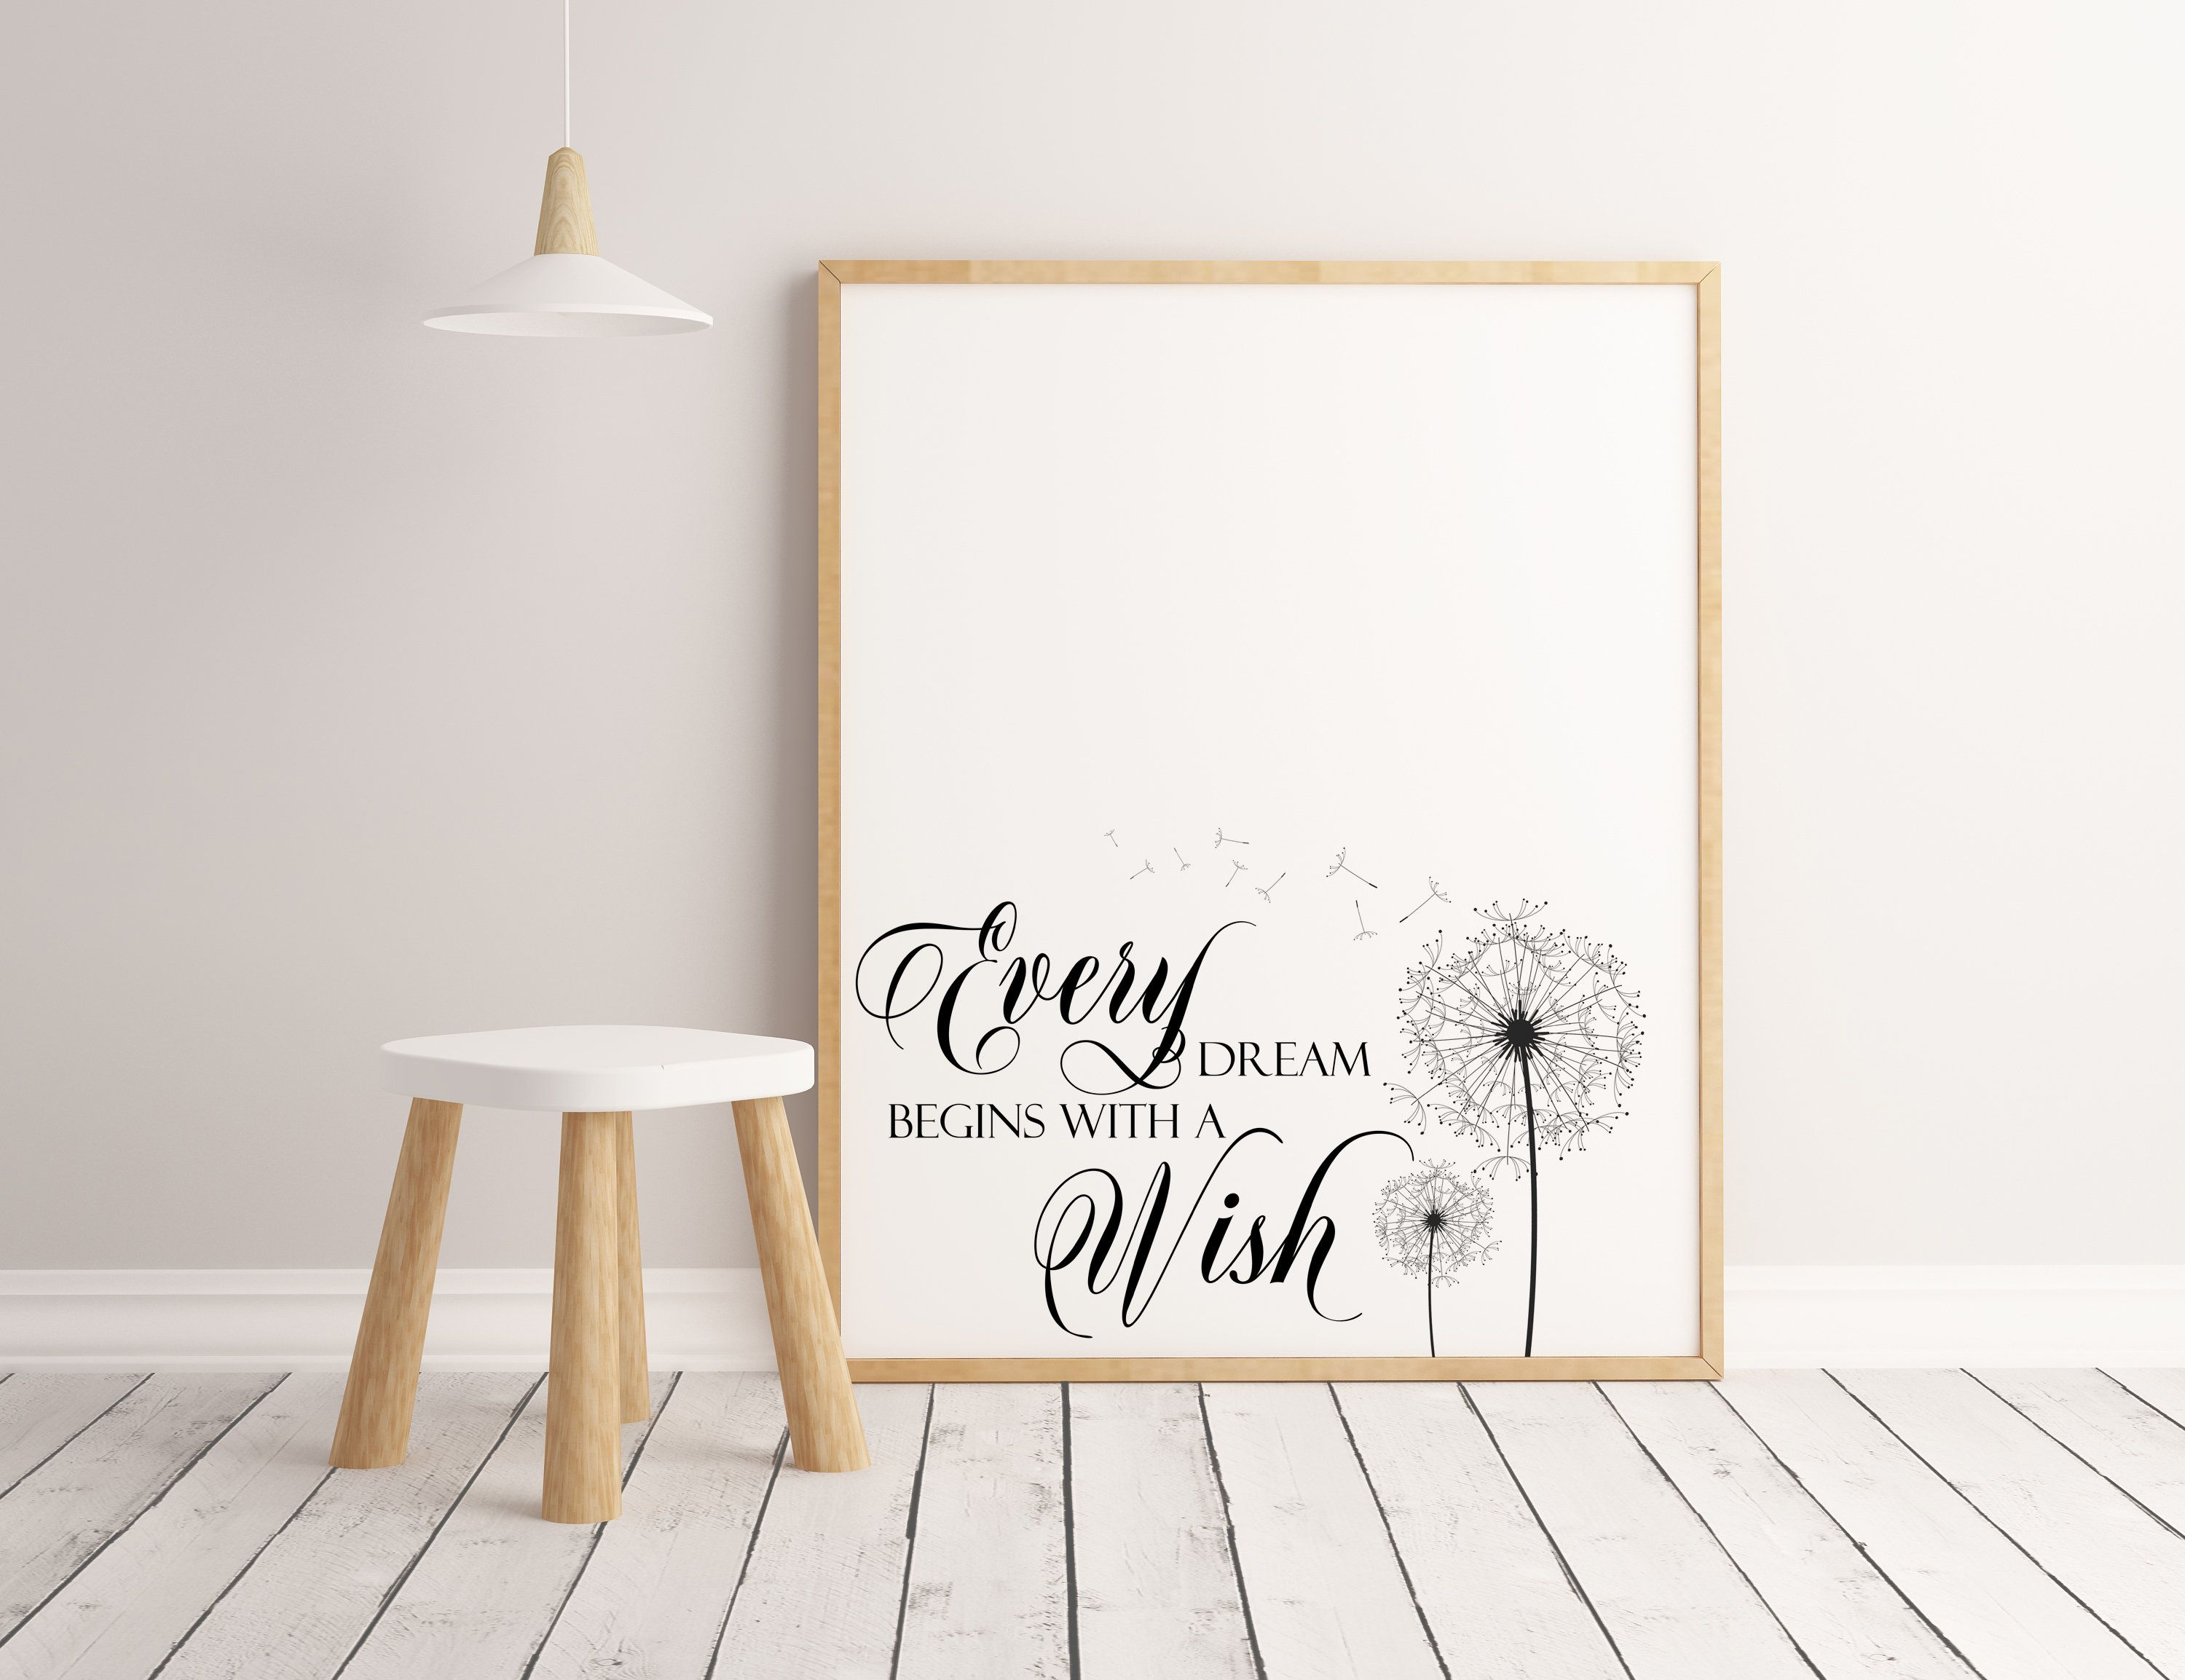 Every Dream Begins With A Wish Printable Wall Art Printable Quotes Farmhouse Decor Dandelion Art P Wall Printables Printable Wall Art Online Printing Companies